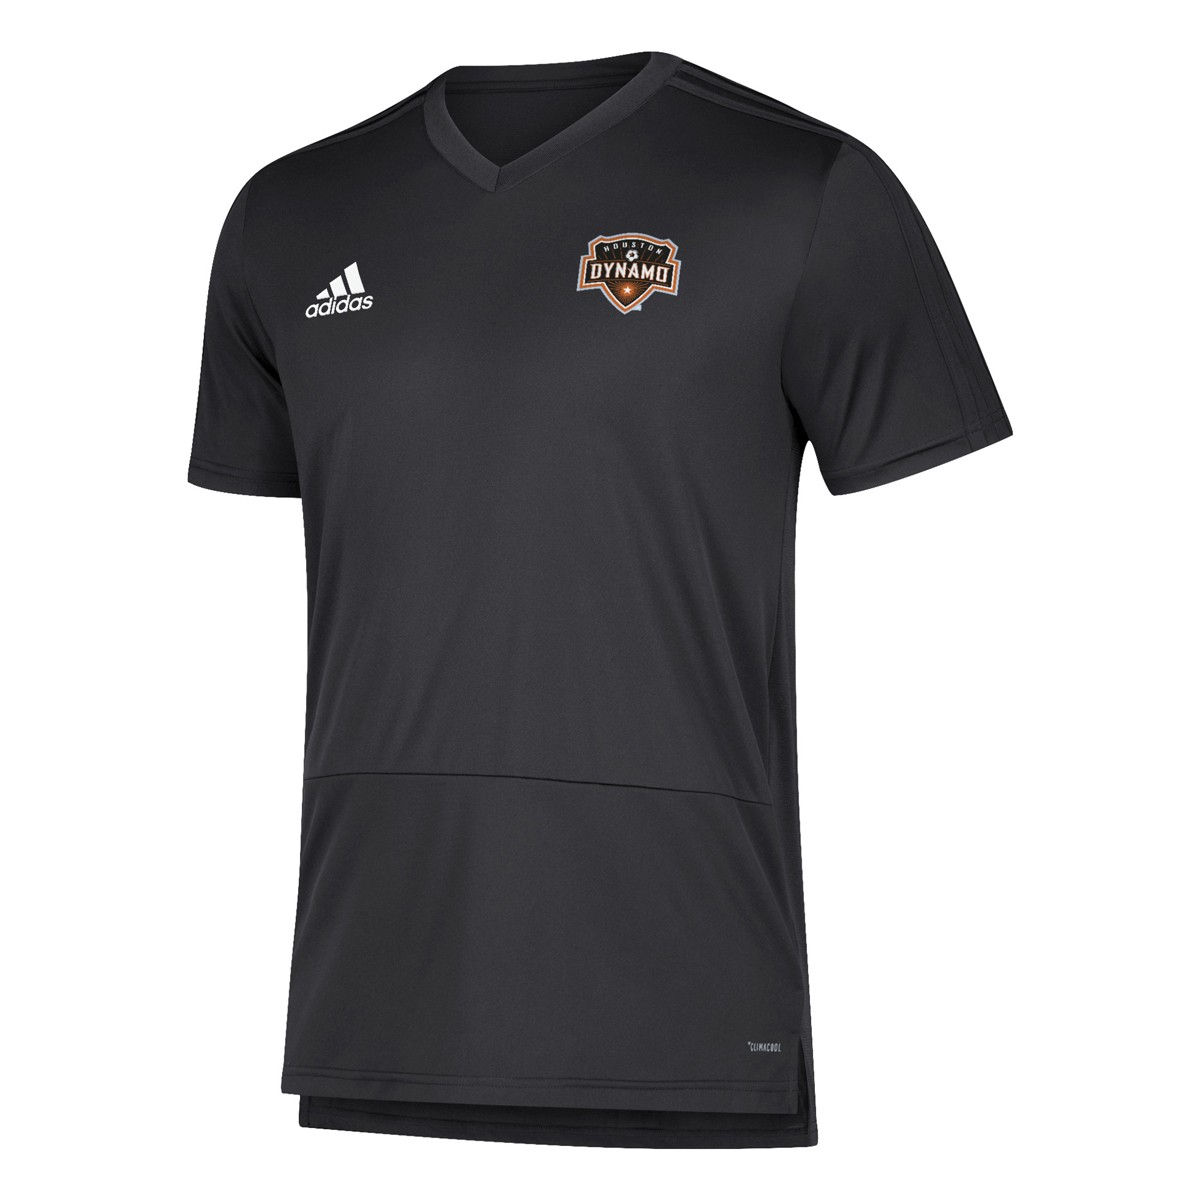 size 40 61fb2 065d4 Details about Houston Dynamo MLS Adidas Men's Black Climacool 2018 Training  Jersey